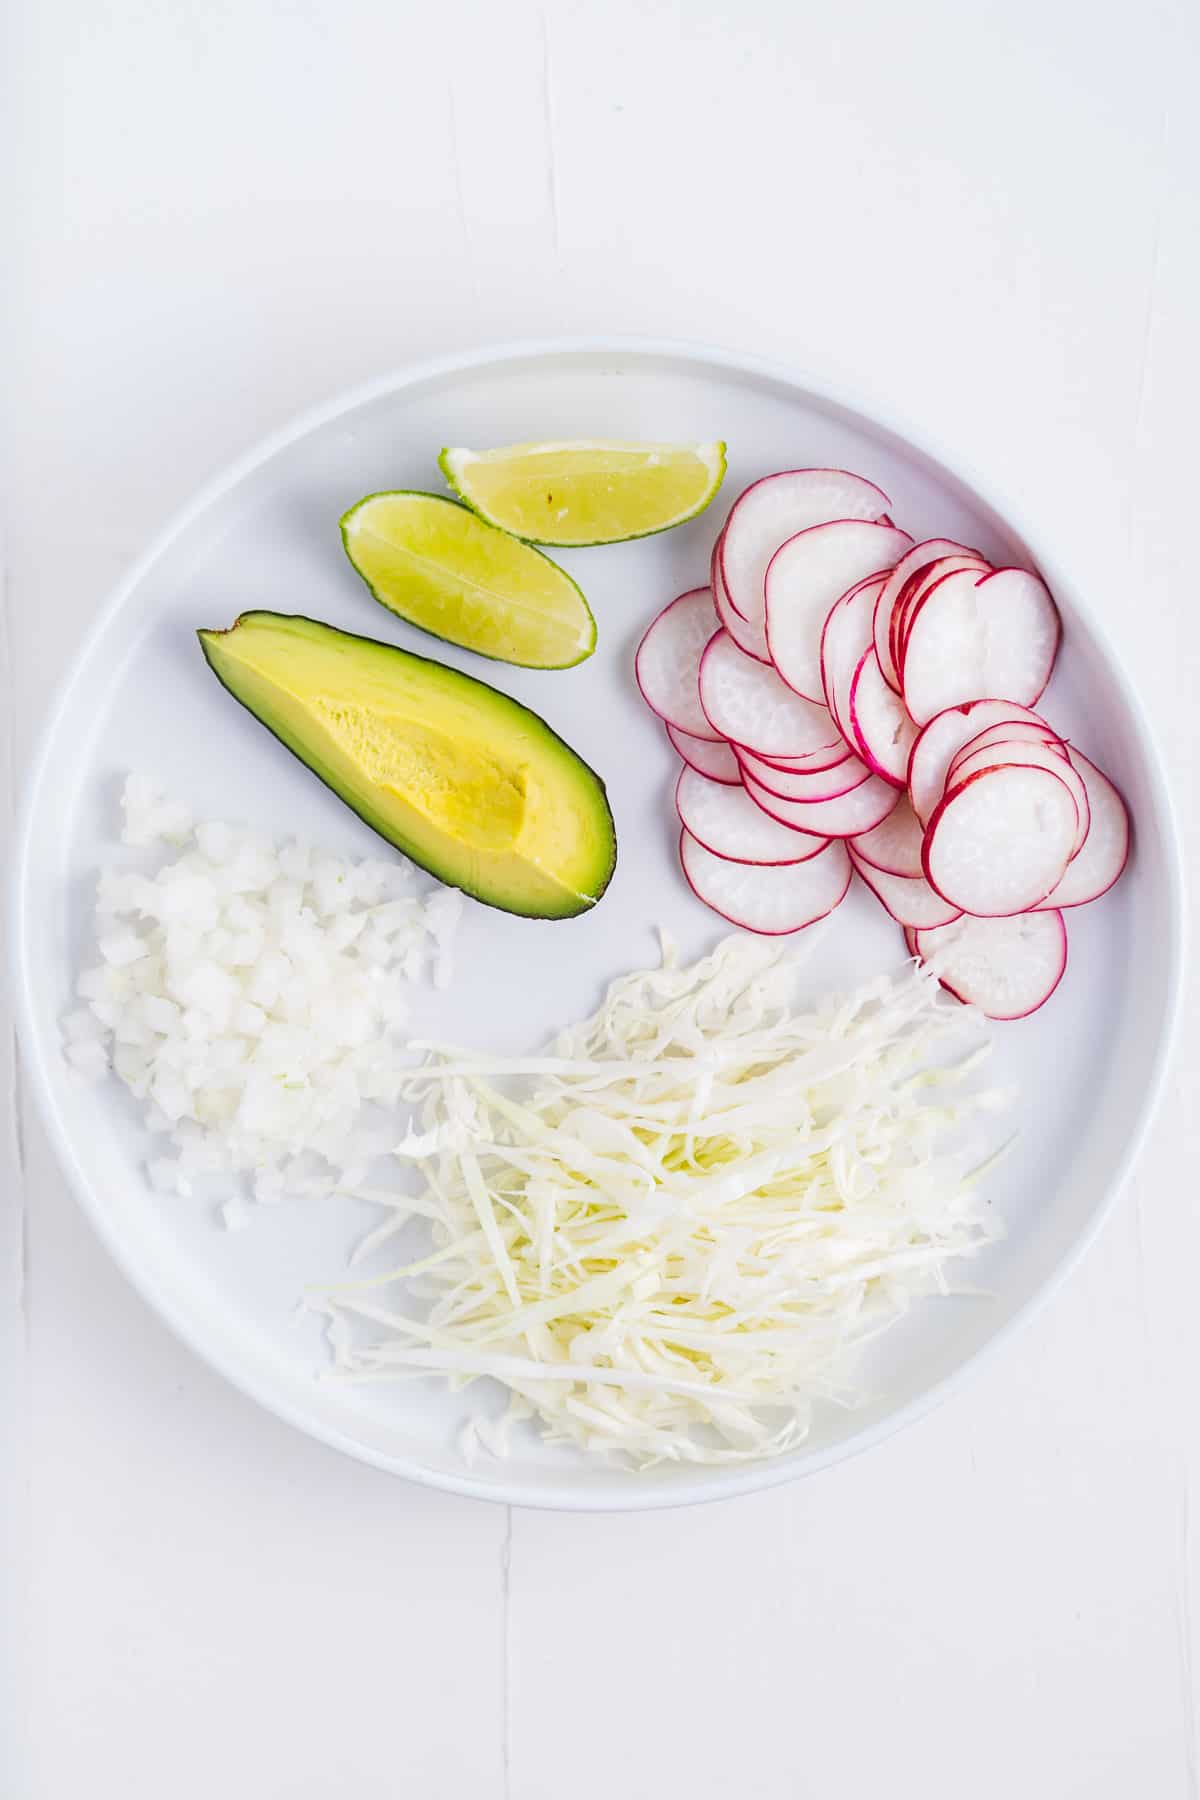 Avocado, Cabbage, Radishes, Limes, and Diced Onion